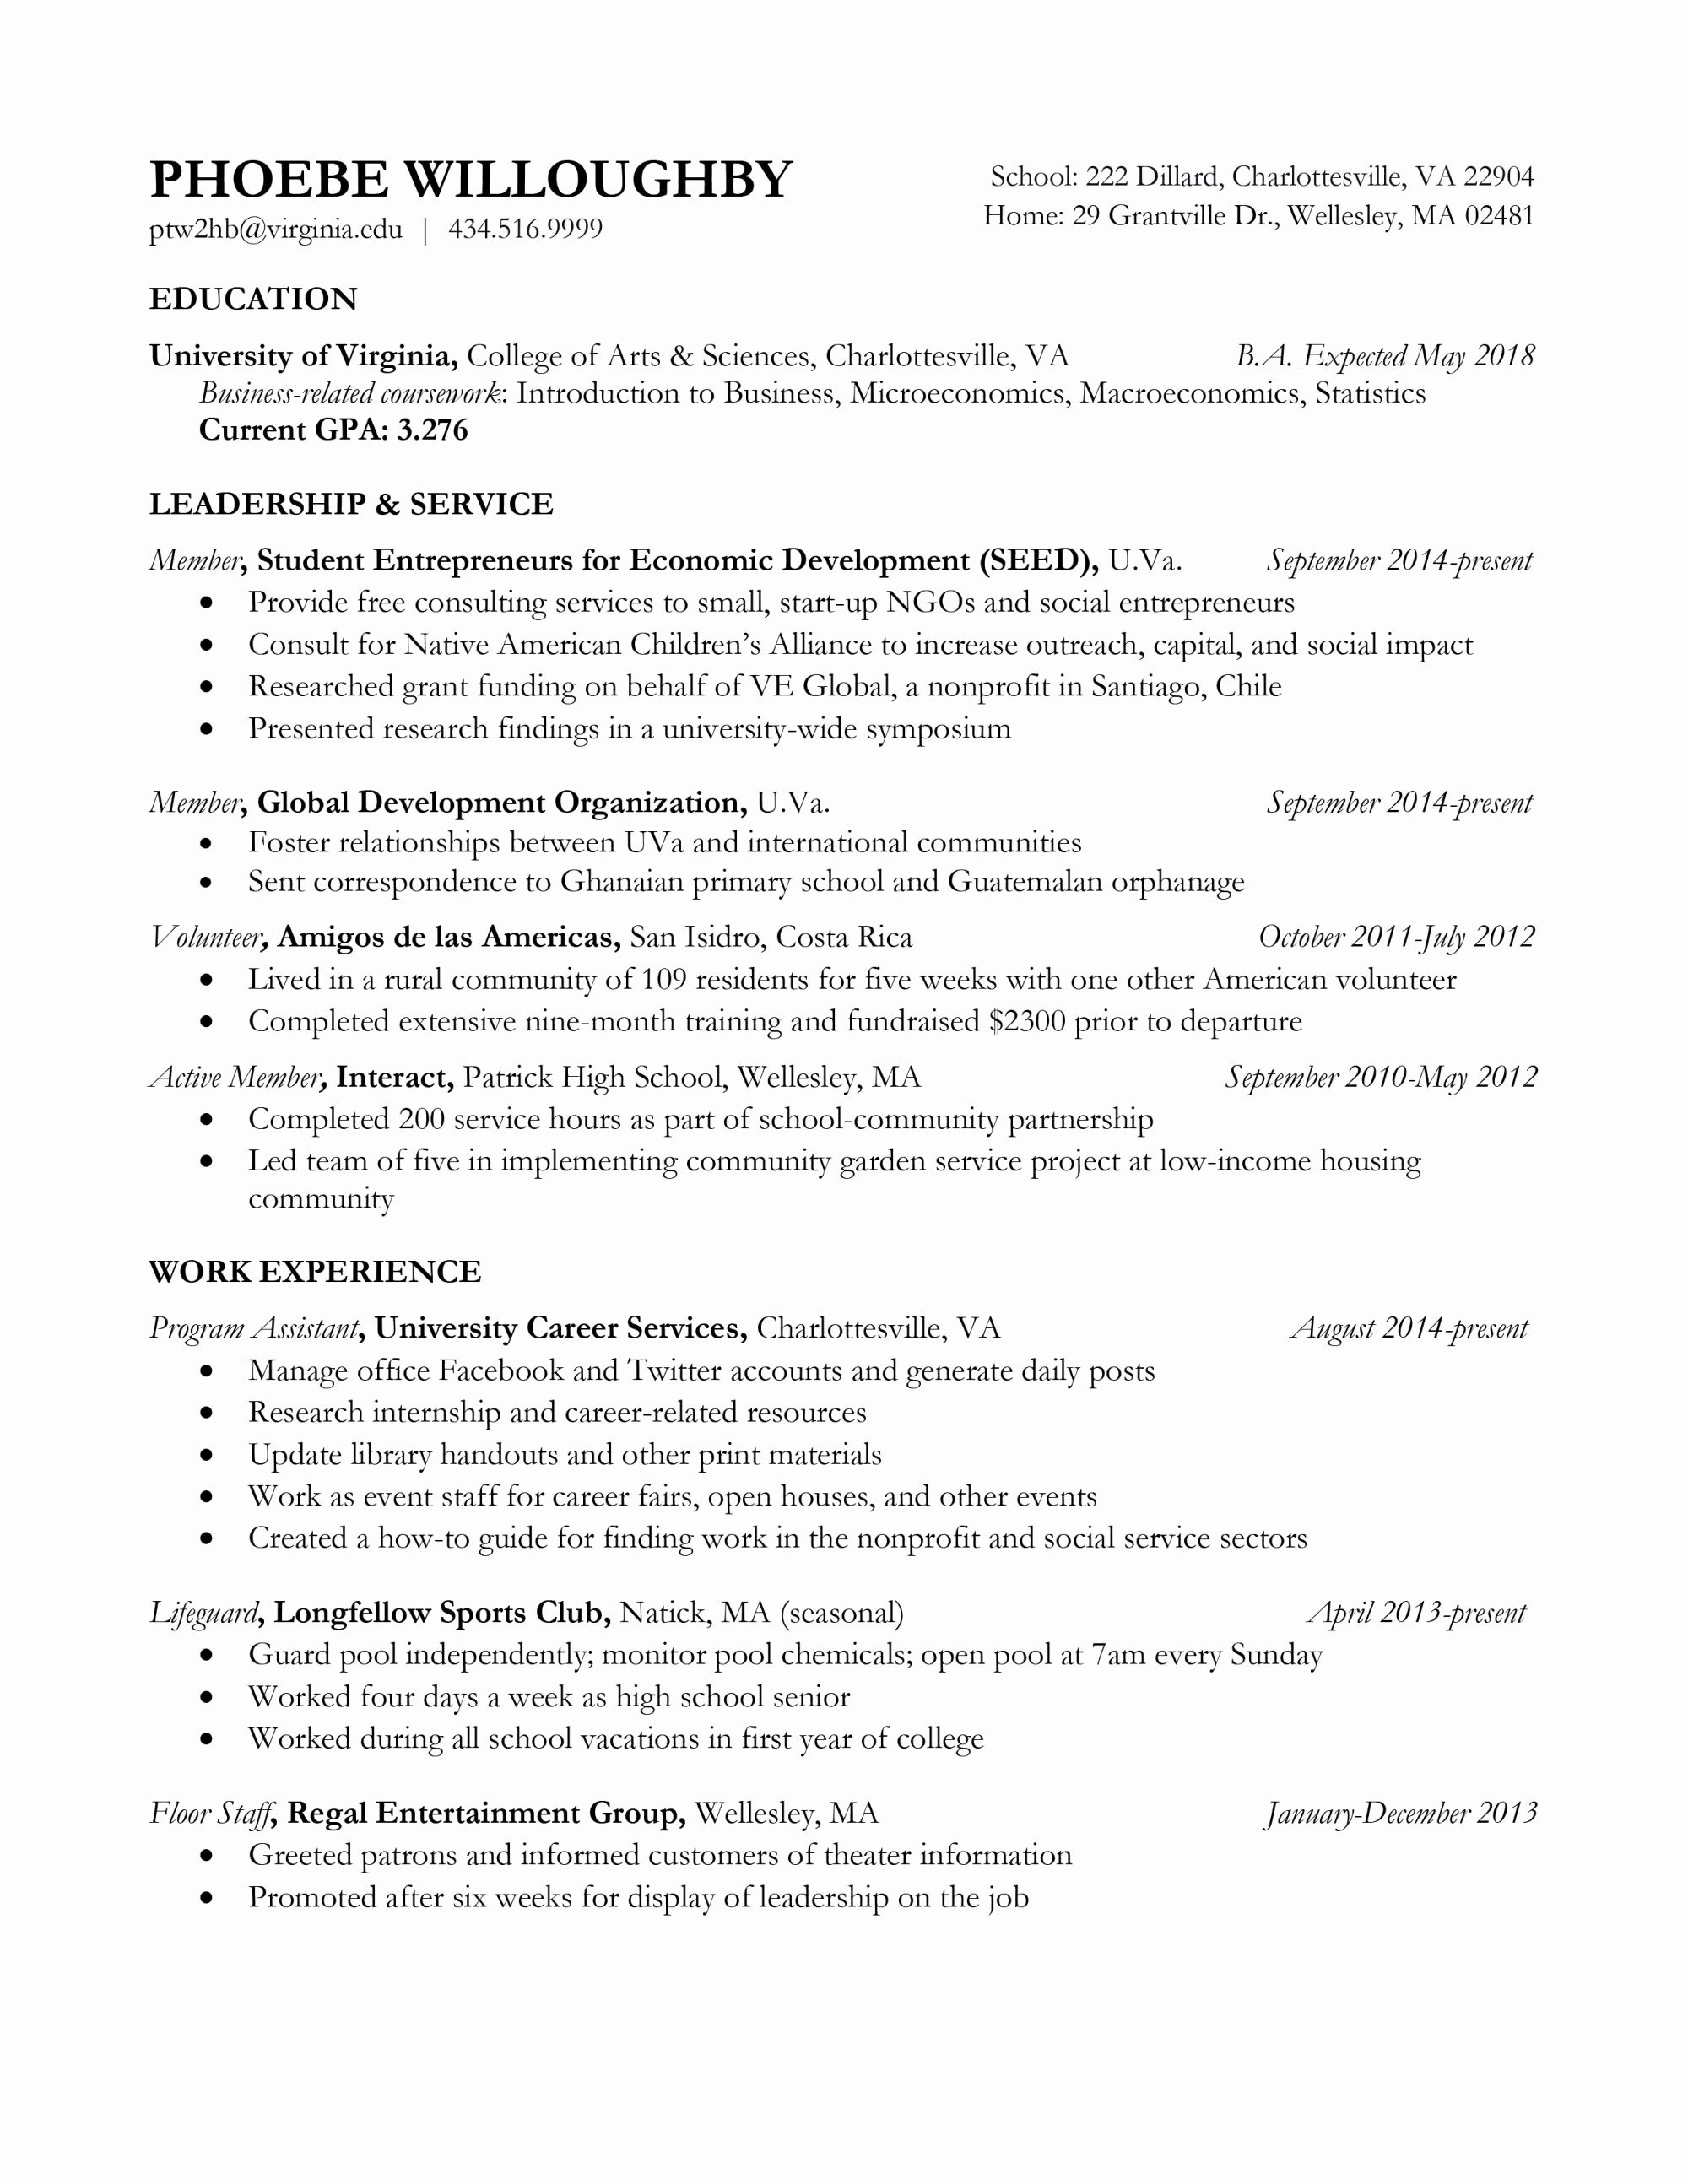 retail resume template free example-Retail Resume Template Free Inspirationa Chef Resume Samples Awesome Retail Resume 0d Archives 5-f